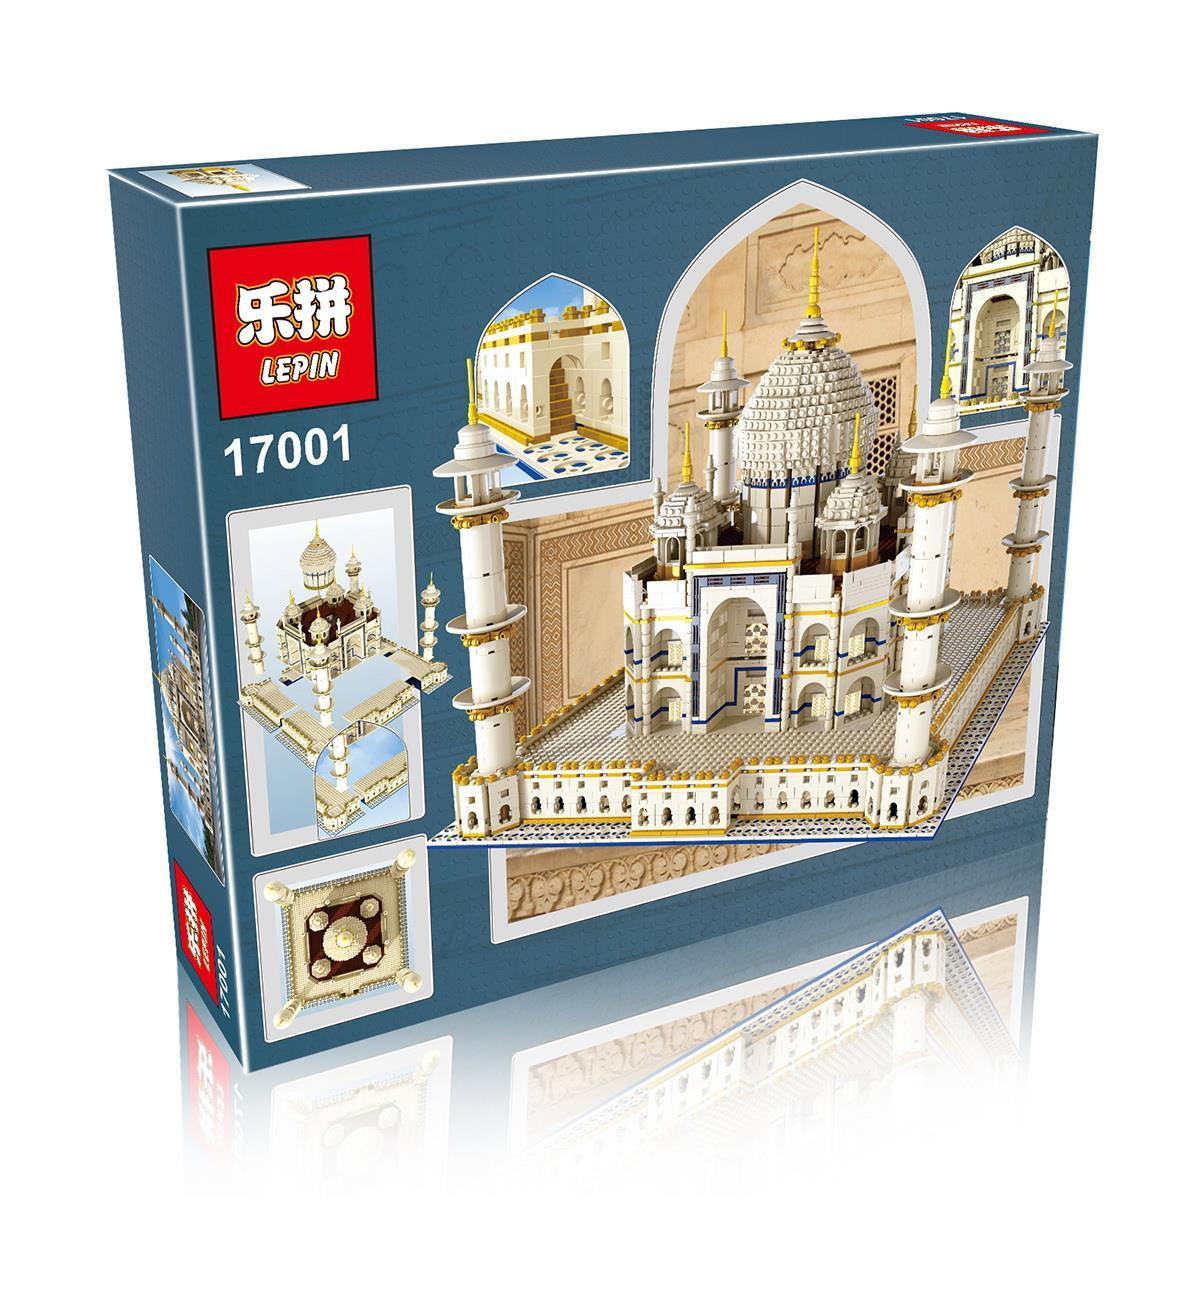 5952+ PCS Building Bricks, LP 17001 Building Blocks Creator 10189 Taj Mahal Model.